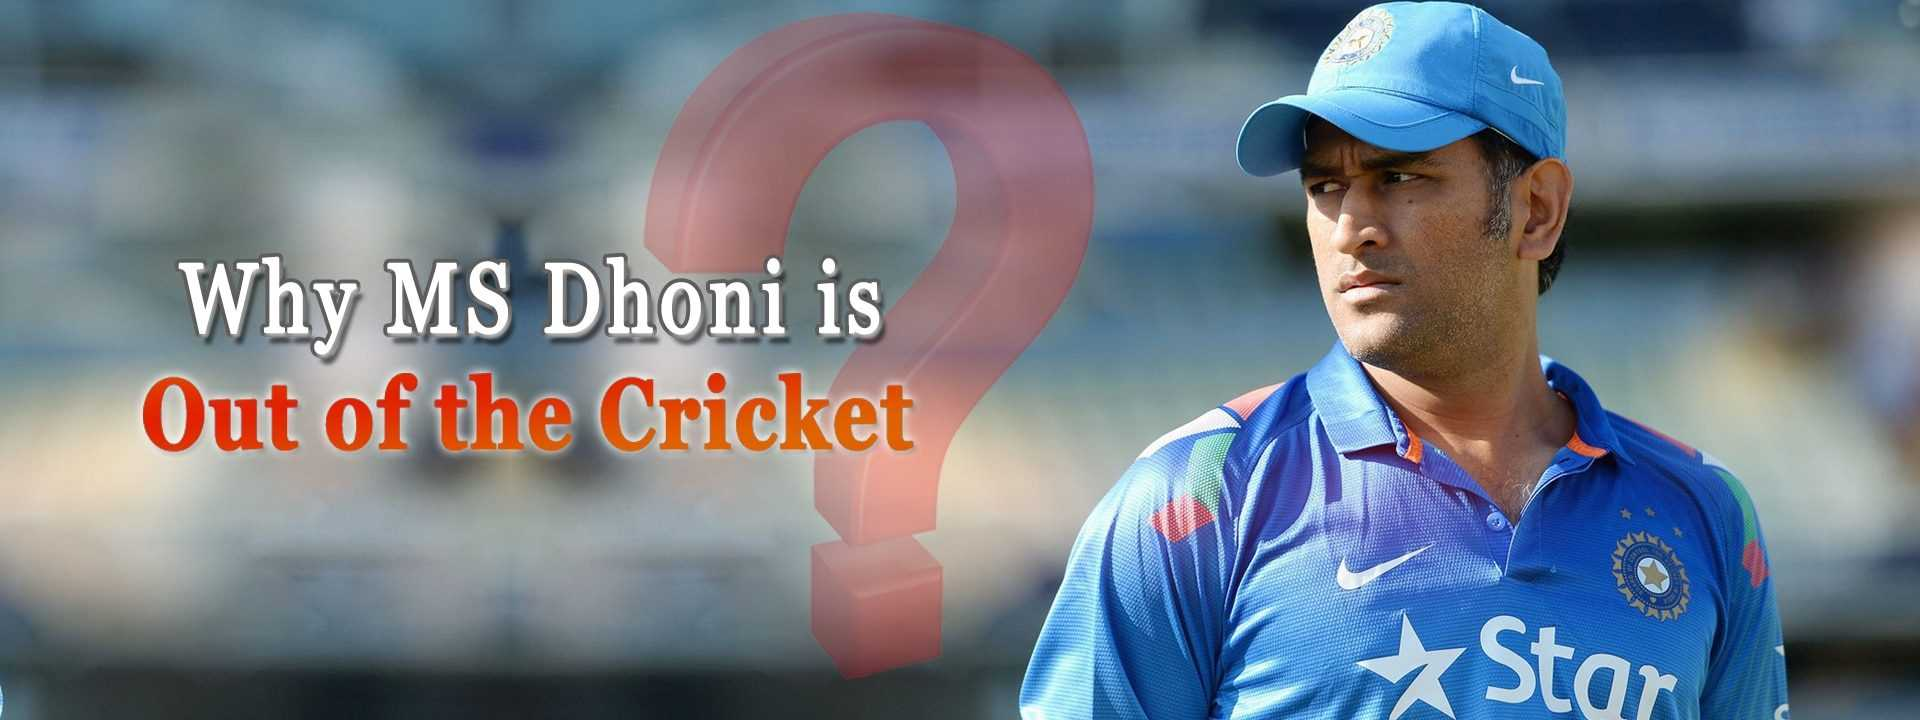 MS Dhoni out of the cricket